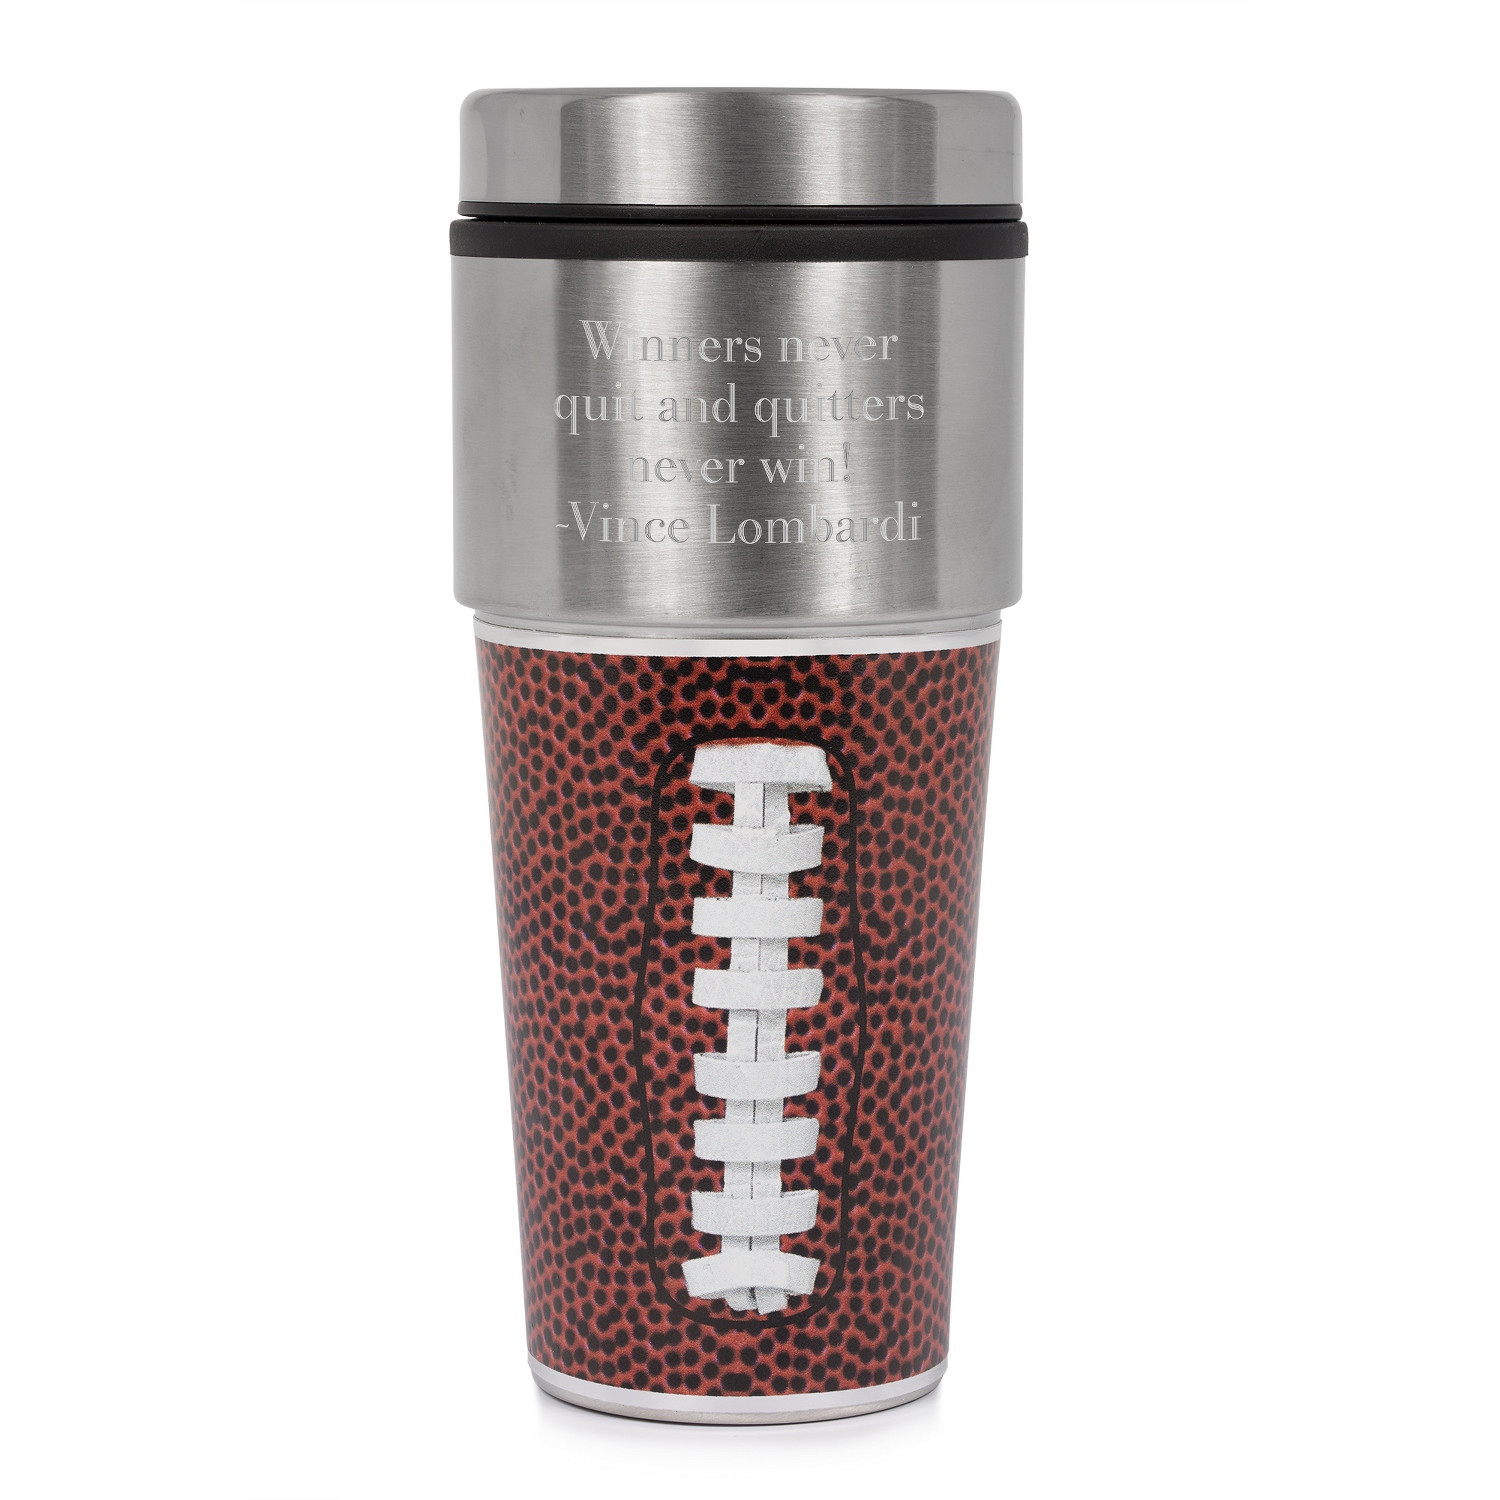 vera wang crystal vase of great gifts for dad under 25 at things remembered inside football travel mug